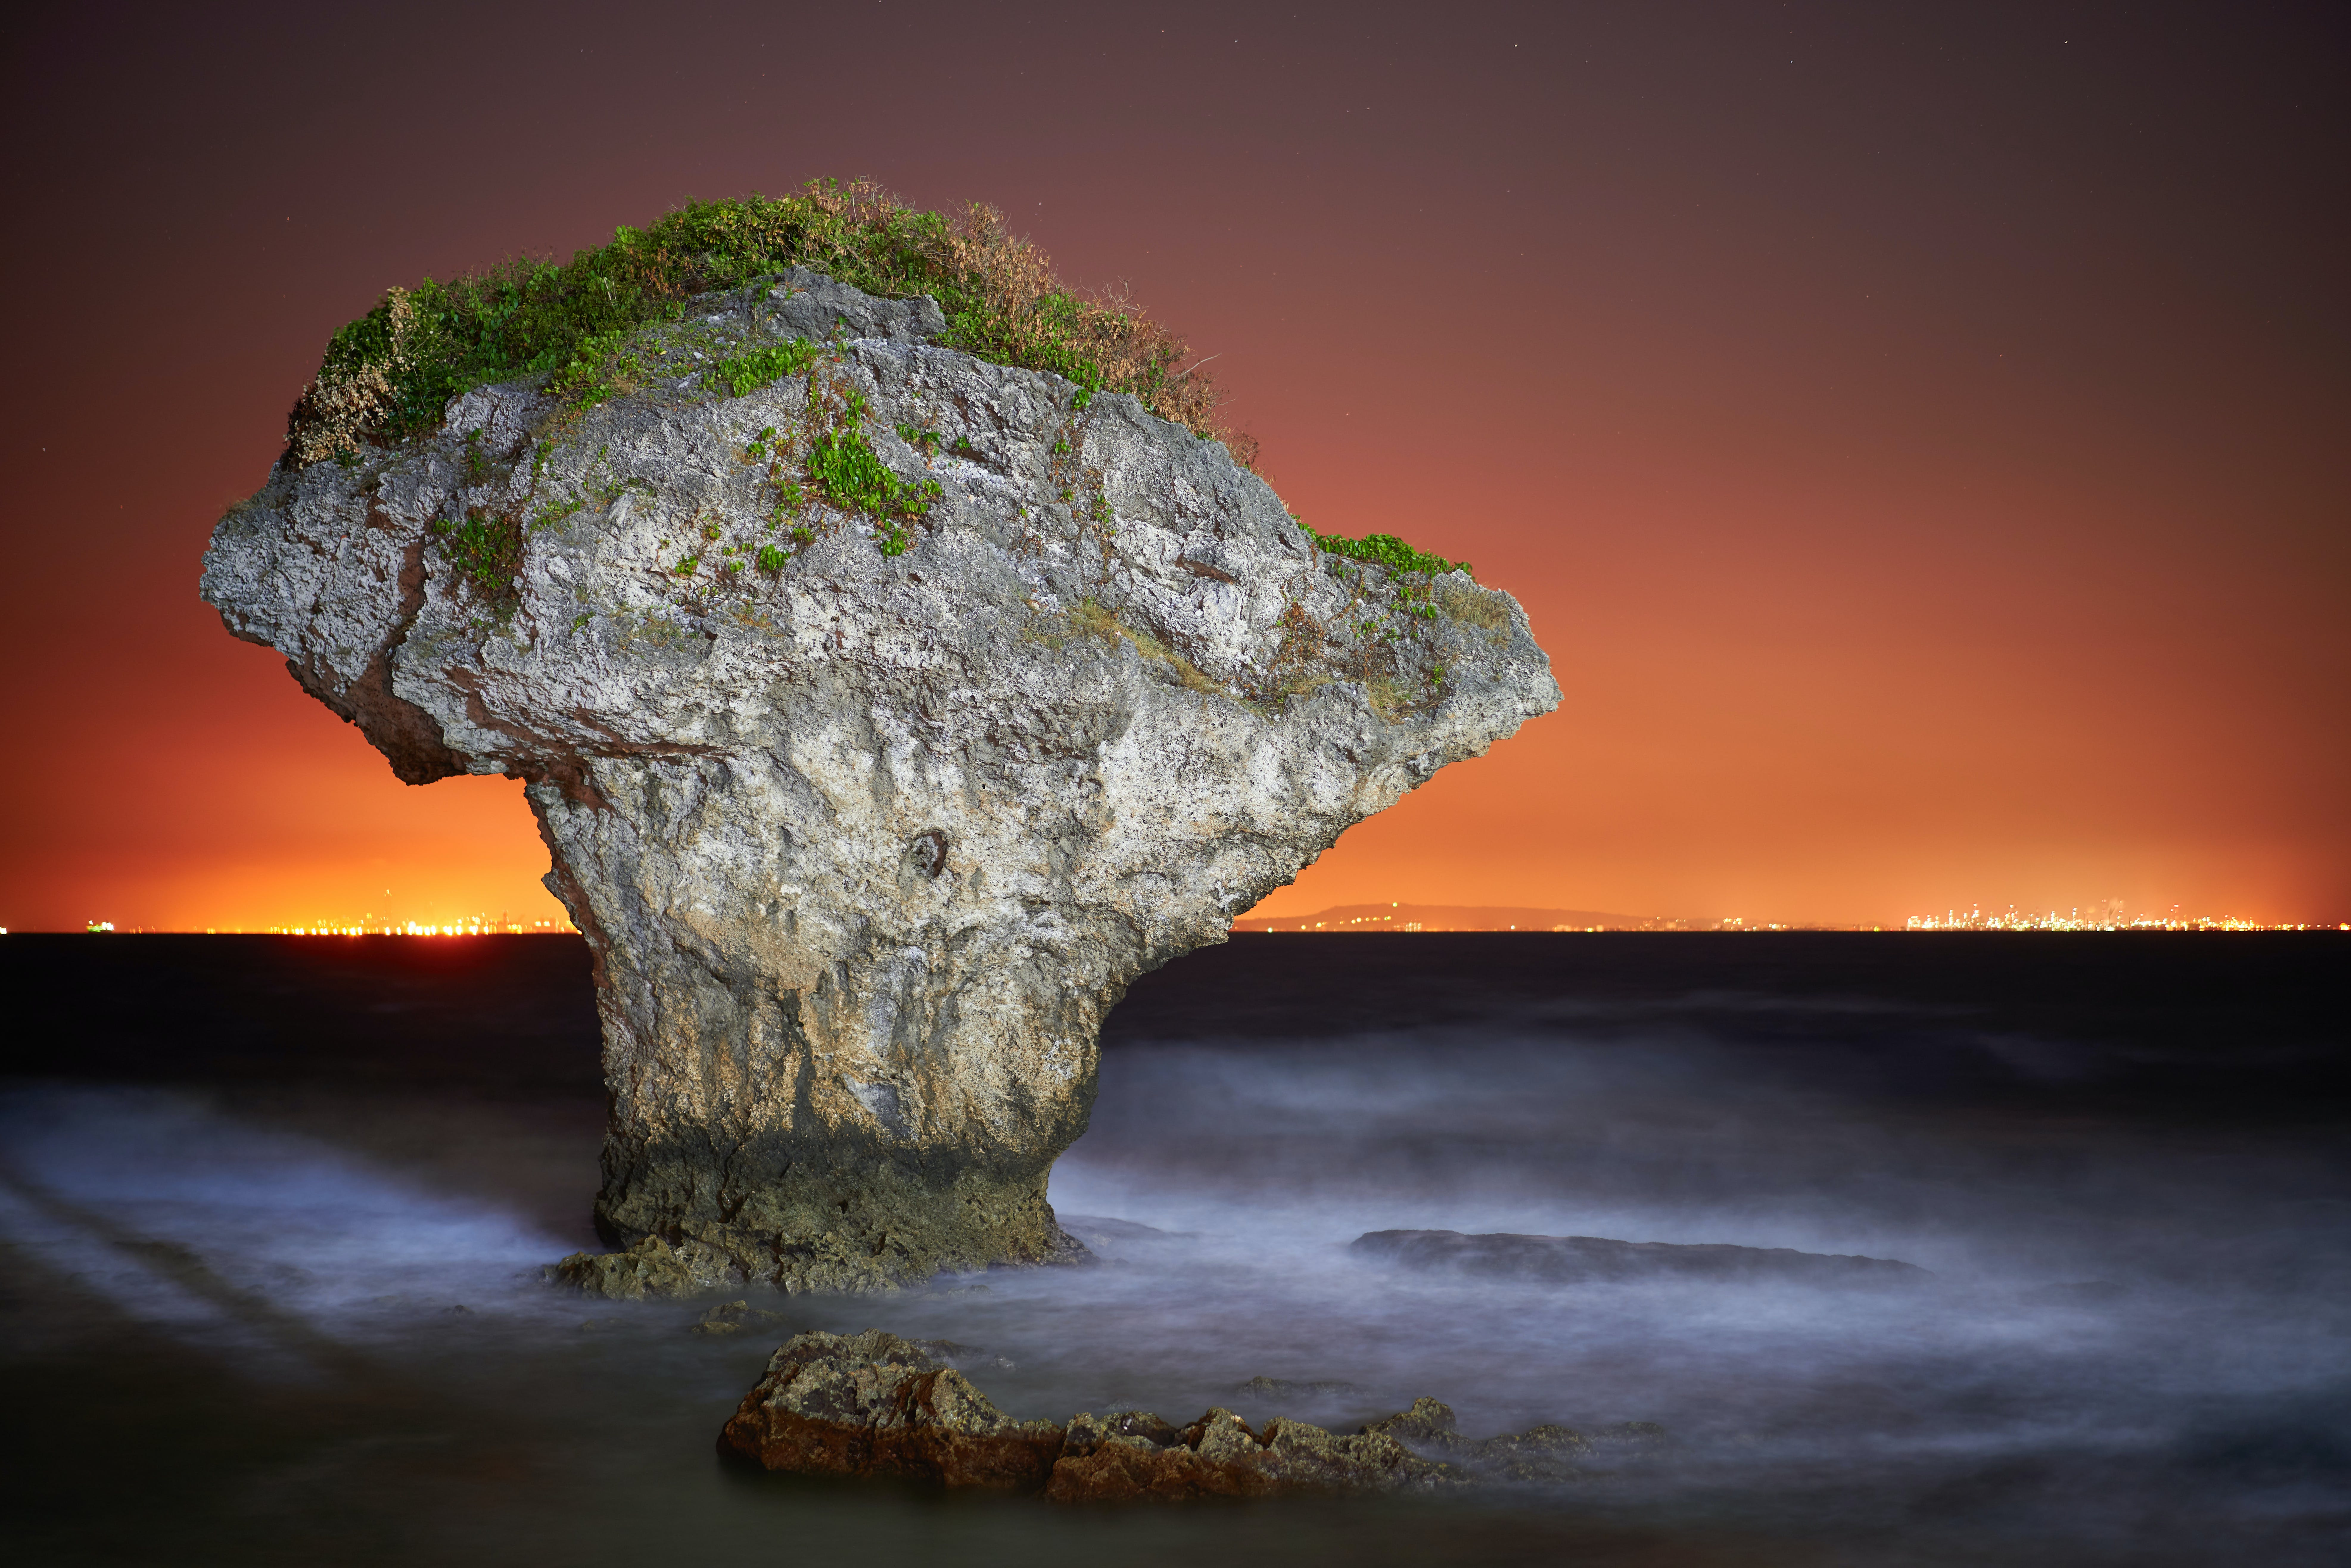 Rock Formation Surrounded By Body Of Water